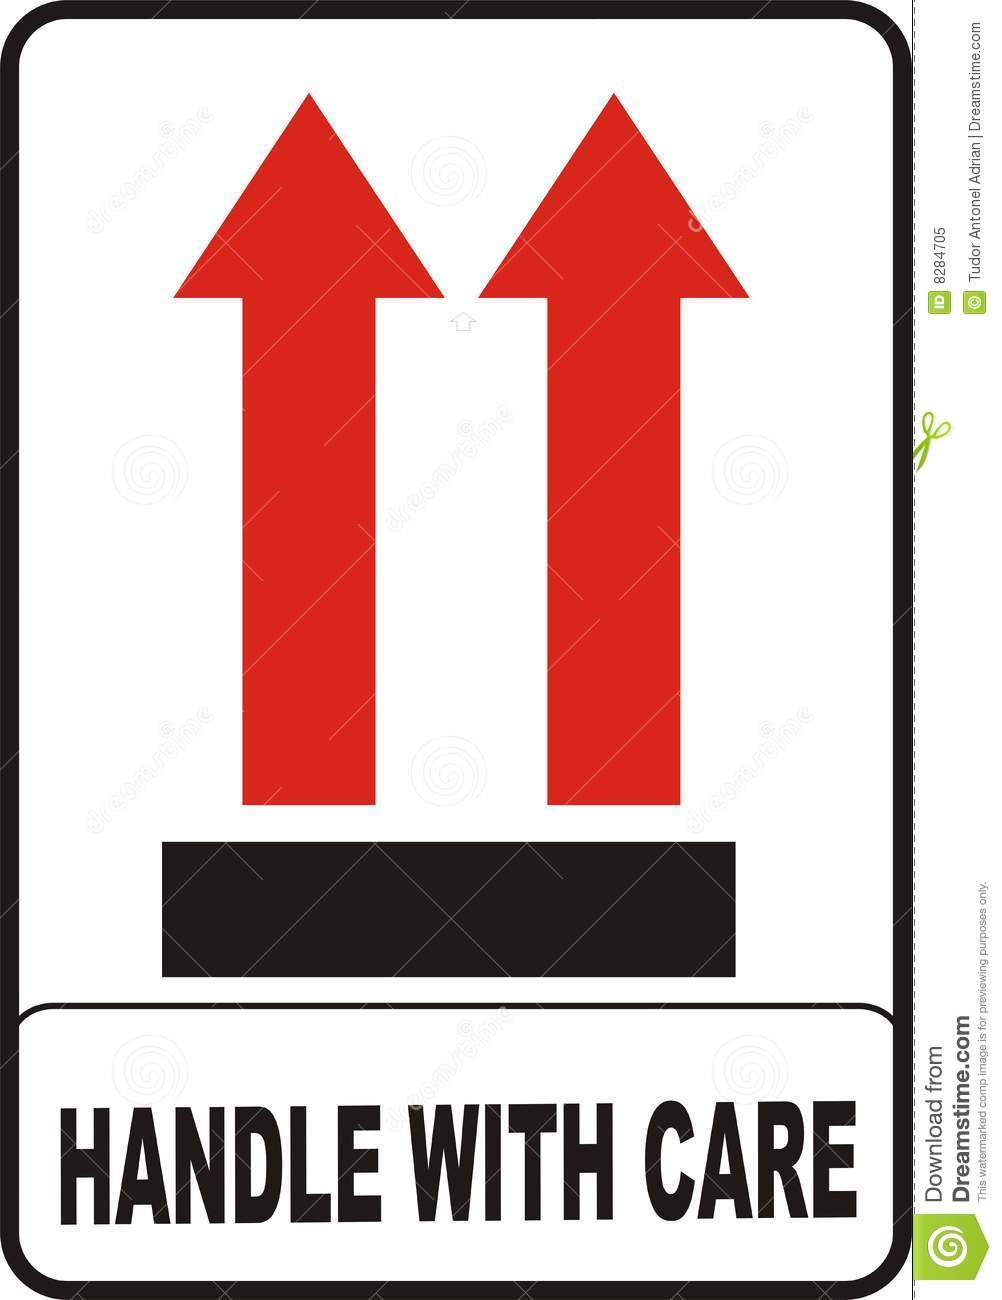 Handle with care stock illustration illustration of arrow 8284705 handle with care buycottarizona